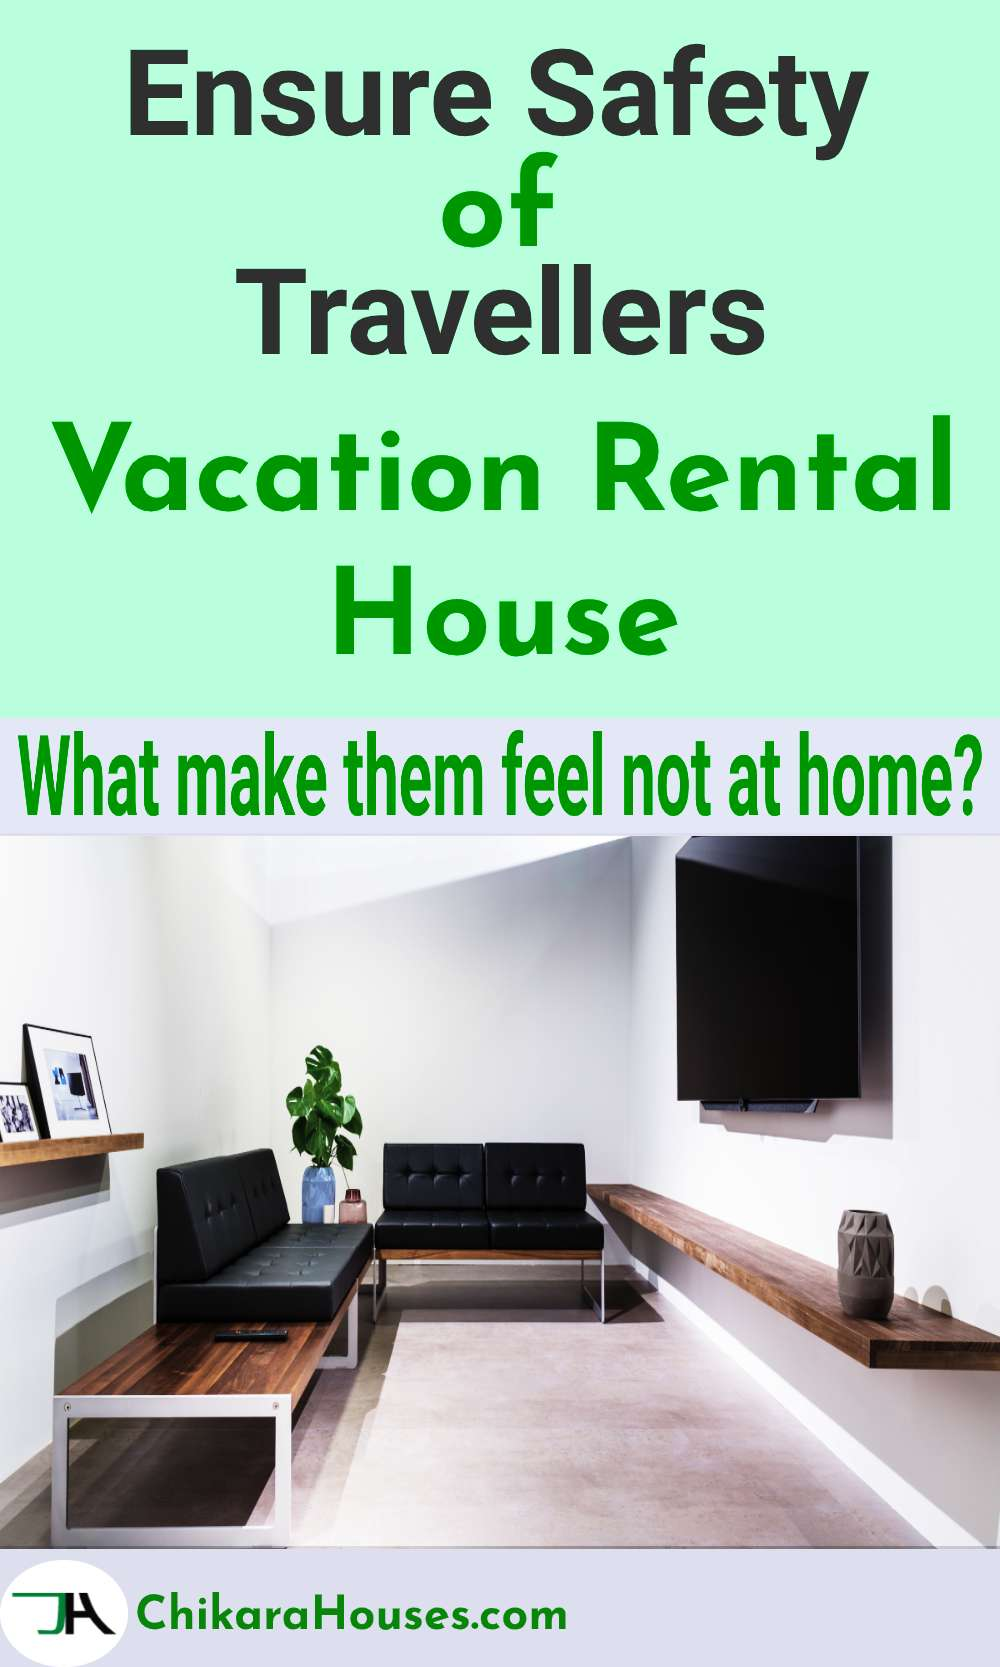 ensure safety of travelers, vacation rental house